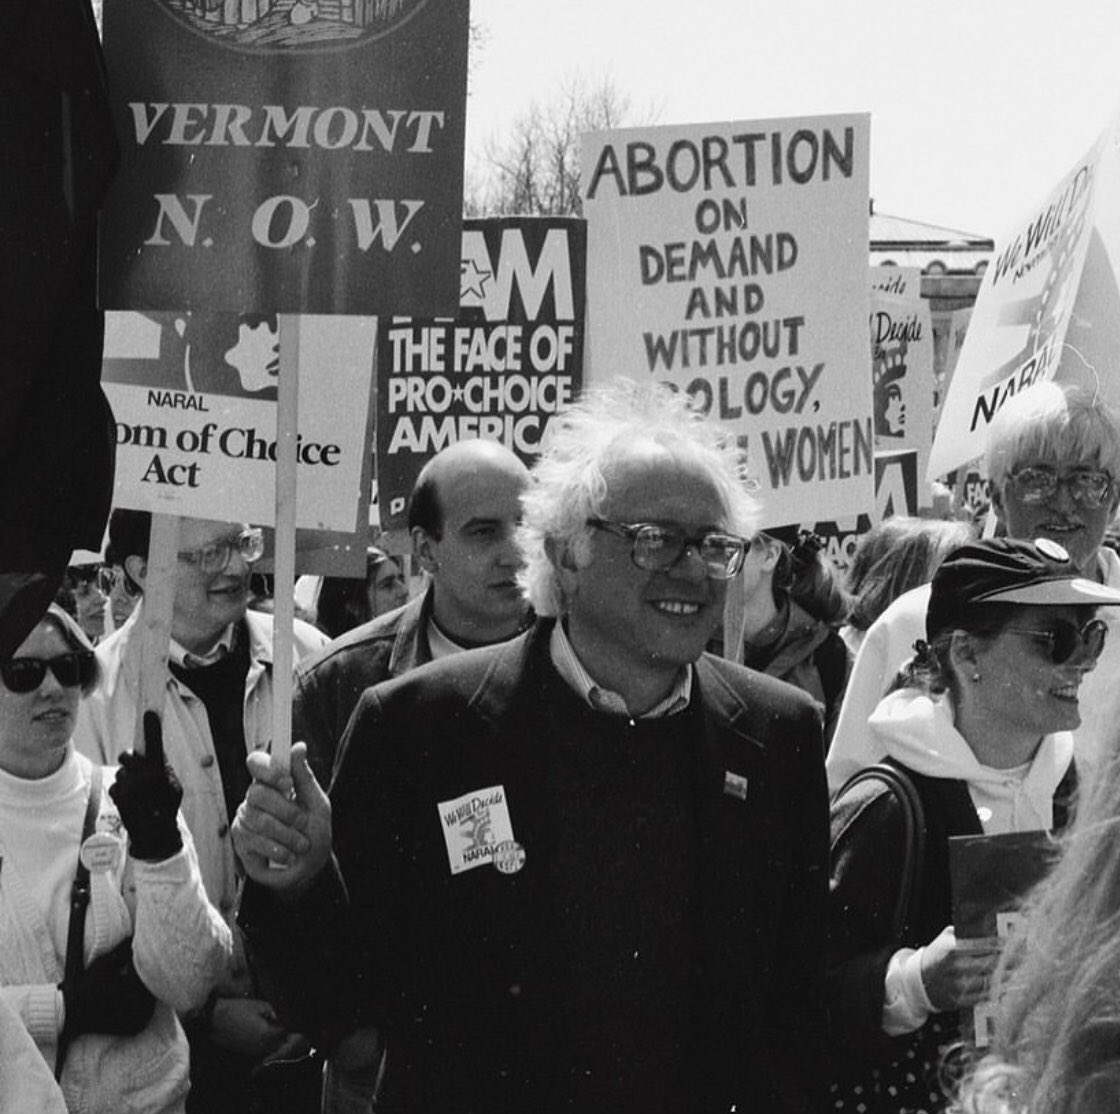 Bernie Sanders has always fought for women's rights. #AbortionIsAWomansRight #Bernie2020